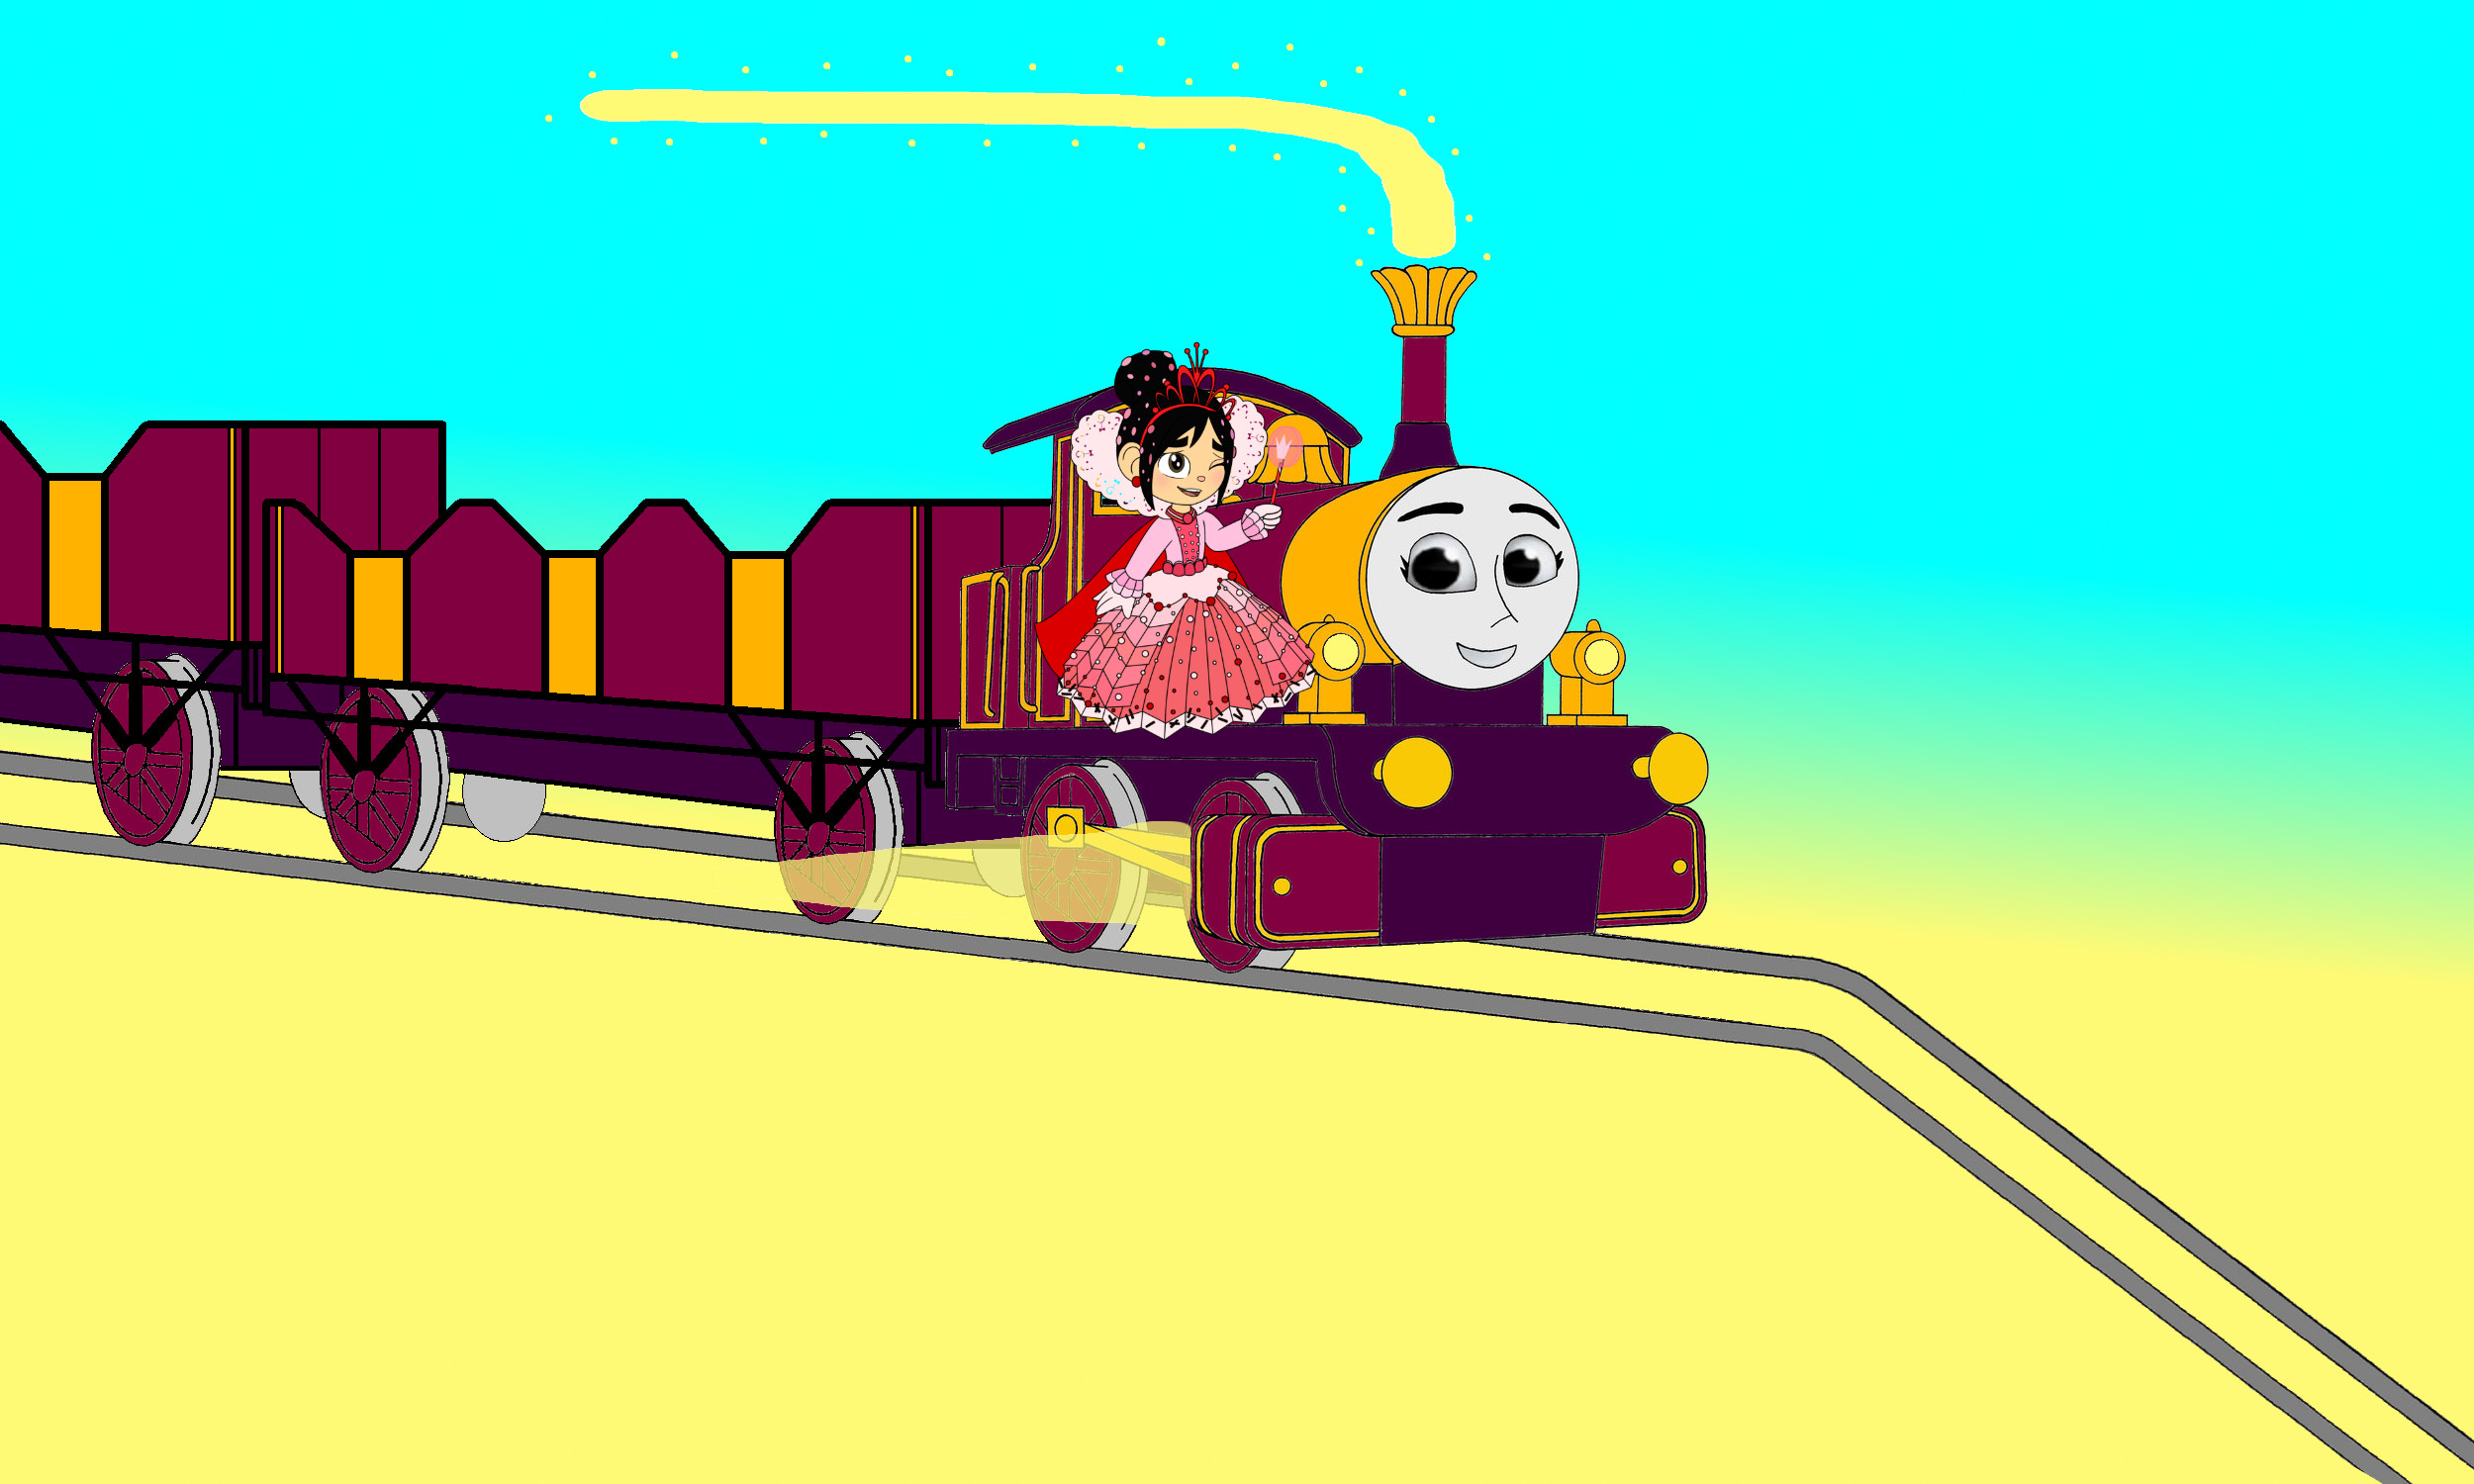 2500x1500 Thomas the Tank Engine images Lady & Vanellope go down the Mountain Hill HD  wallpaper and background photos